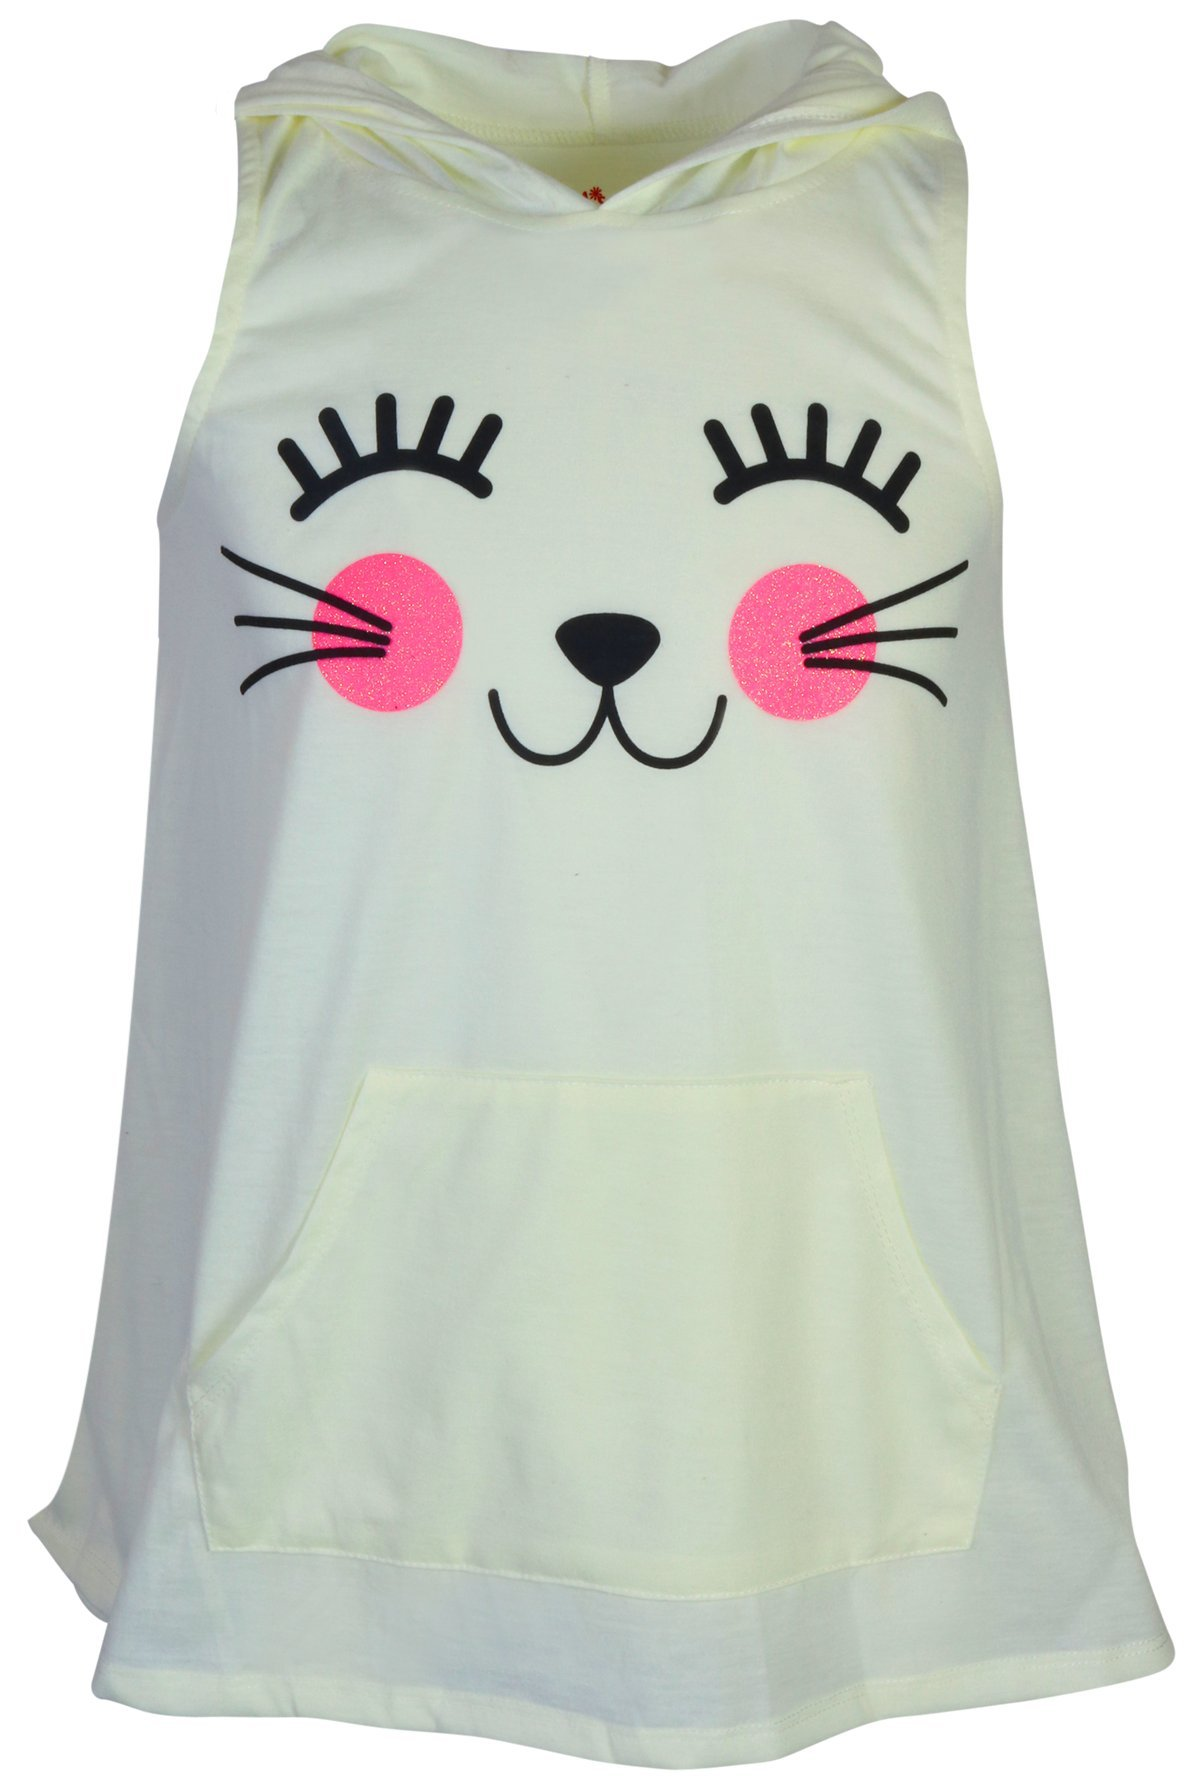 dELiAs Girl's Sleeveless Summer Pajama Short Set With Animal Character Hood, Cat, Size 14/16' by dELiA*s (Image #3)